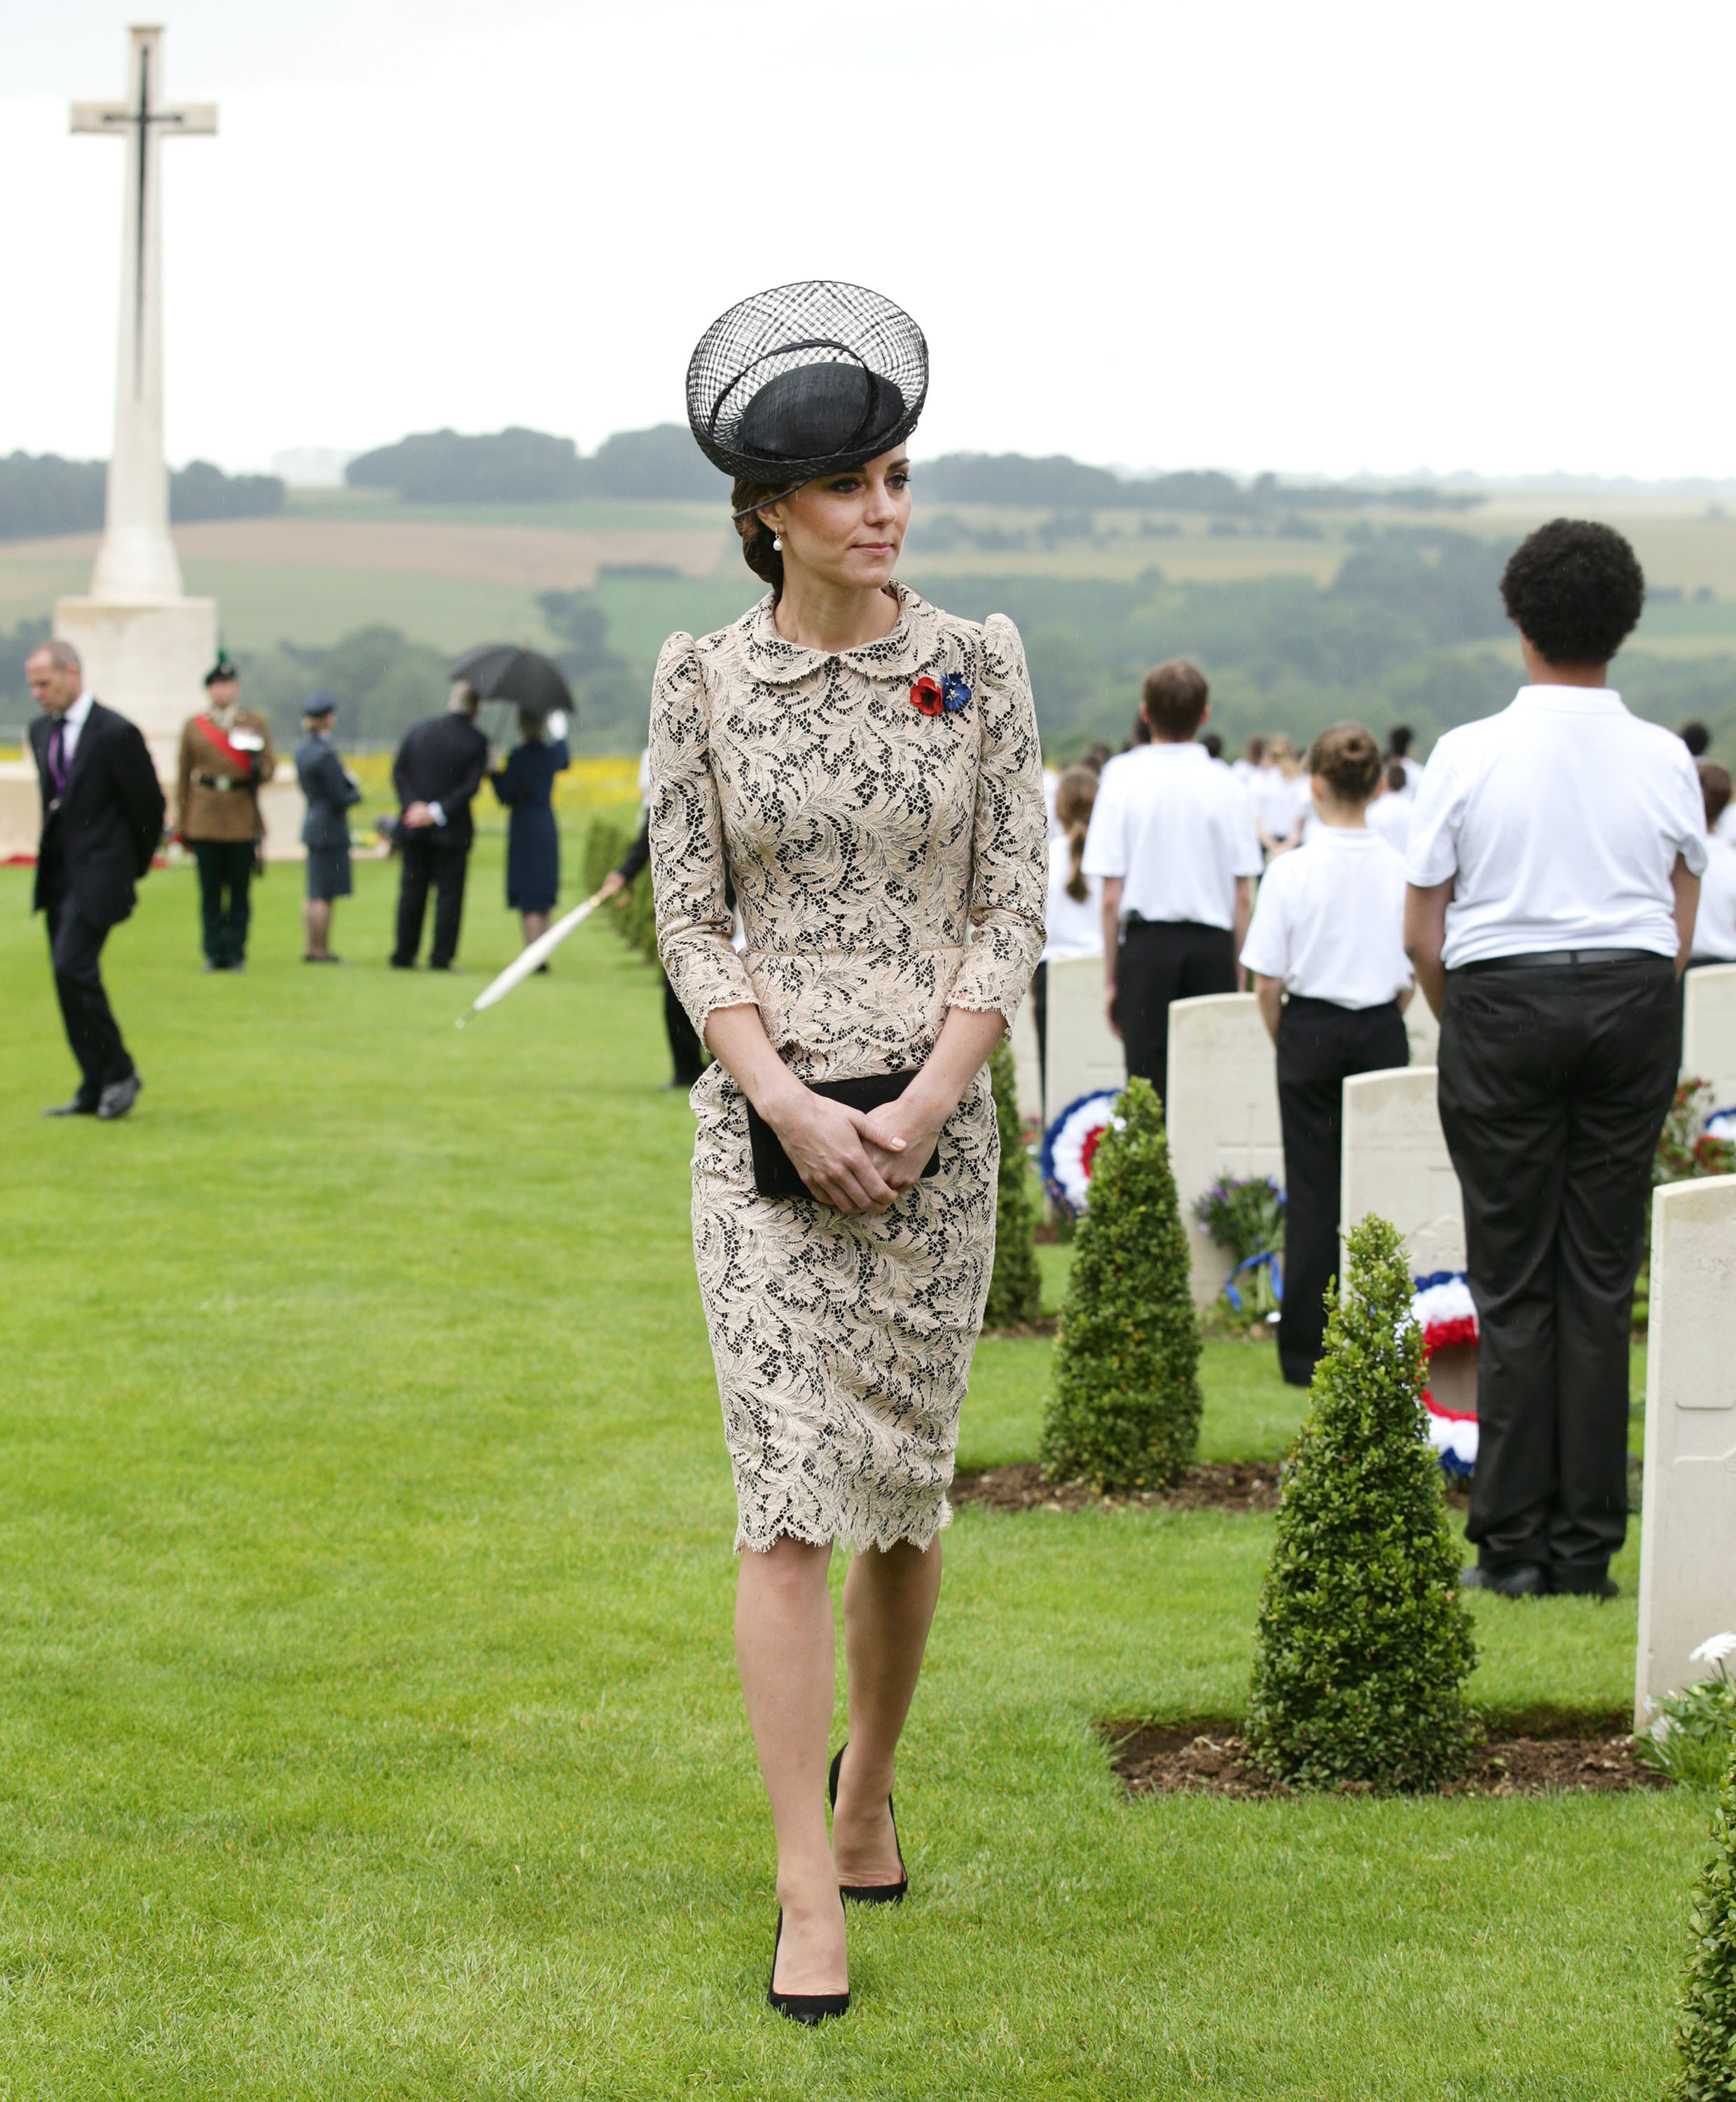 Catherine, Duchess of Cambridge, attends The Commemoration of the Centenary of The Battle of the Somme at The Commonwealth War Graves Commision Thiepval Memorial in Albert, France, on July 01, 2016.